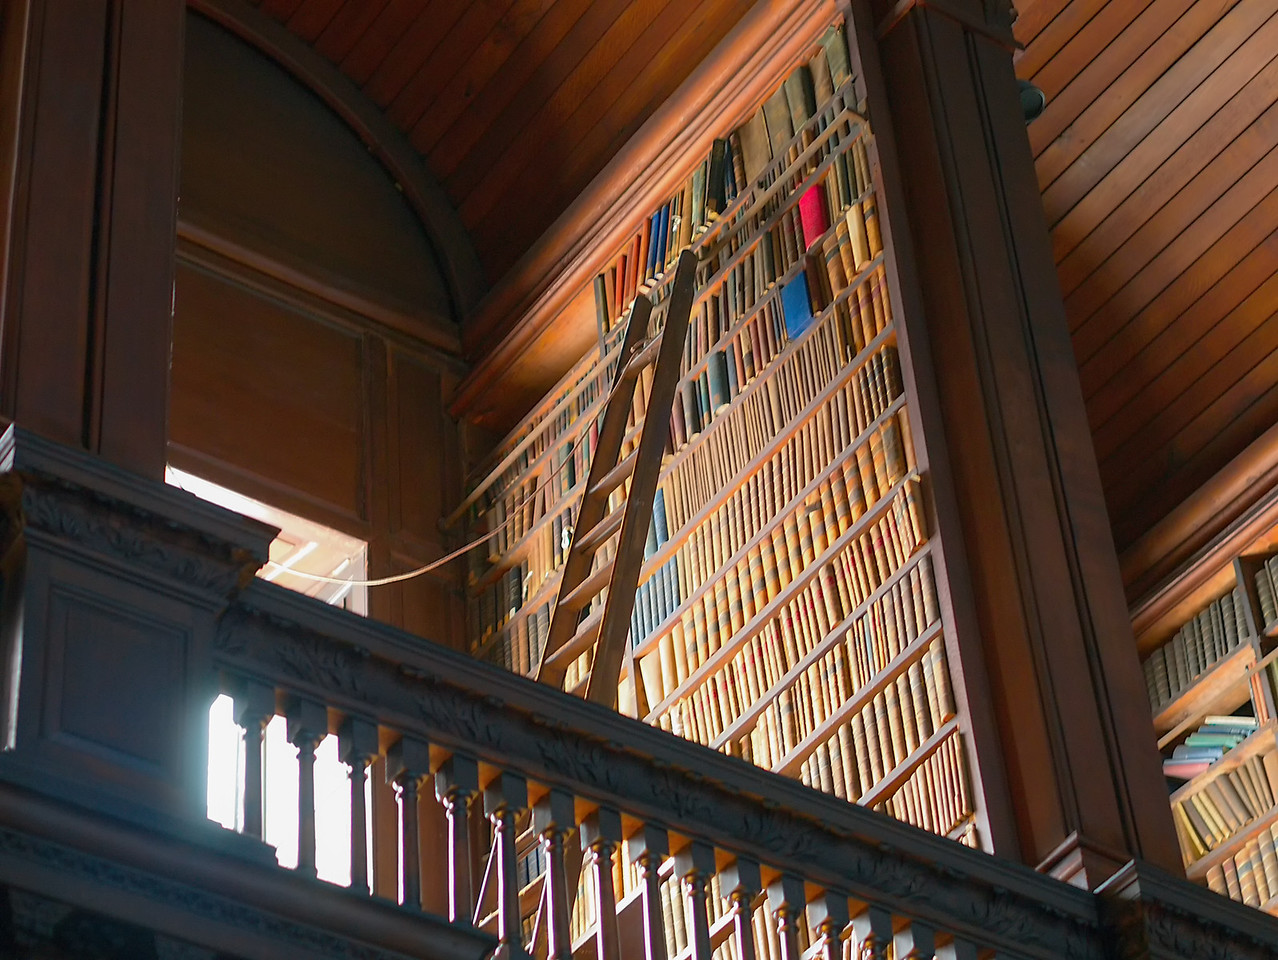 Inside the Library at Trinity College